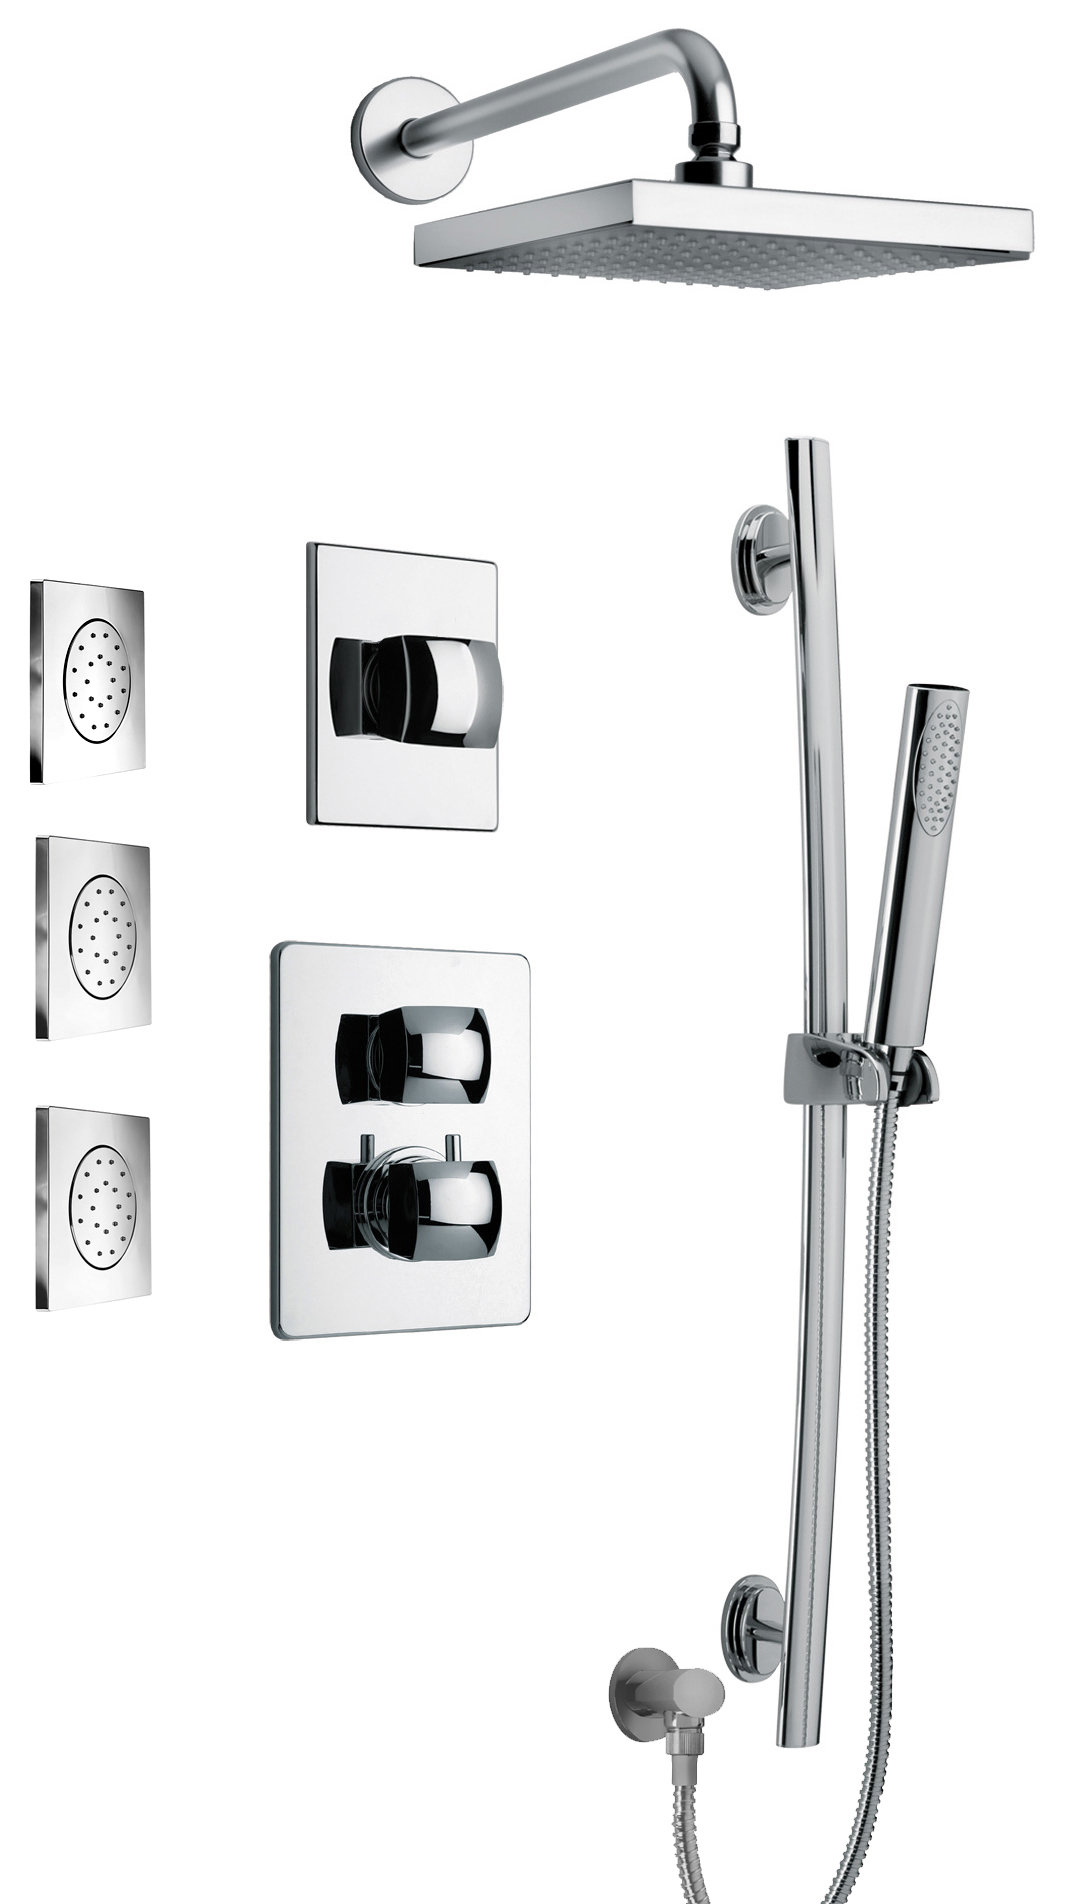 "Thermostatic Shower With 3/4"" Ceramic Disc Volume Control, 3-Way Diverter, Slide Bar and 3 Concealed Body Jets with Color Options"